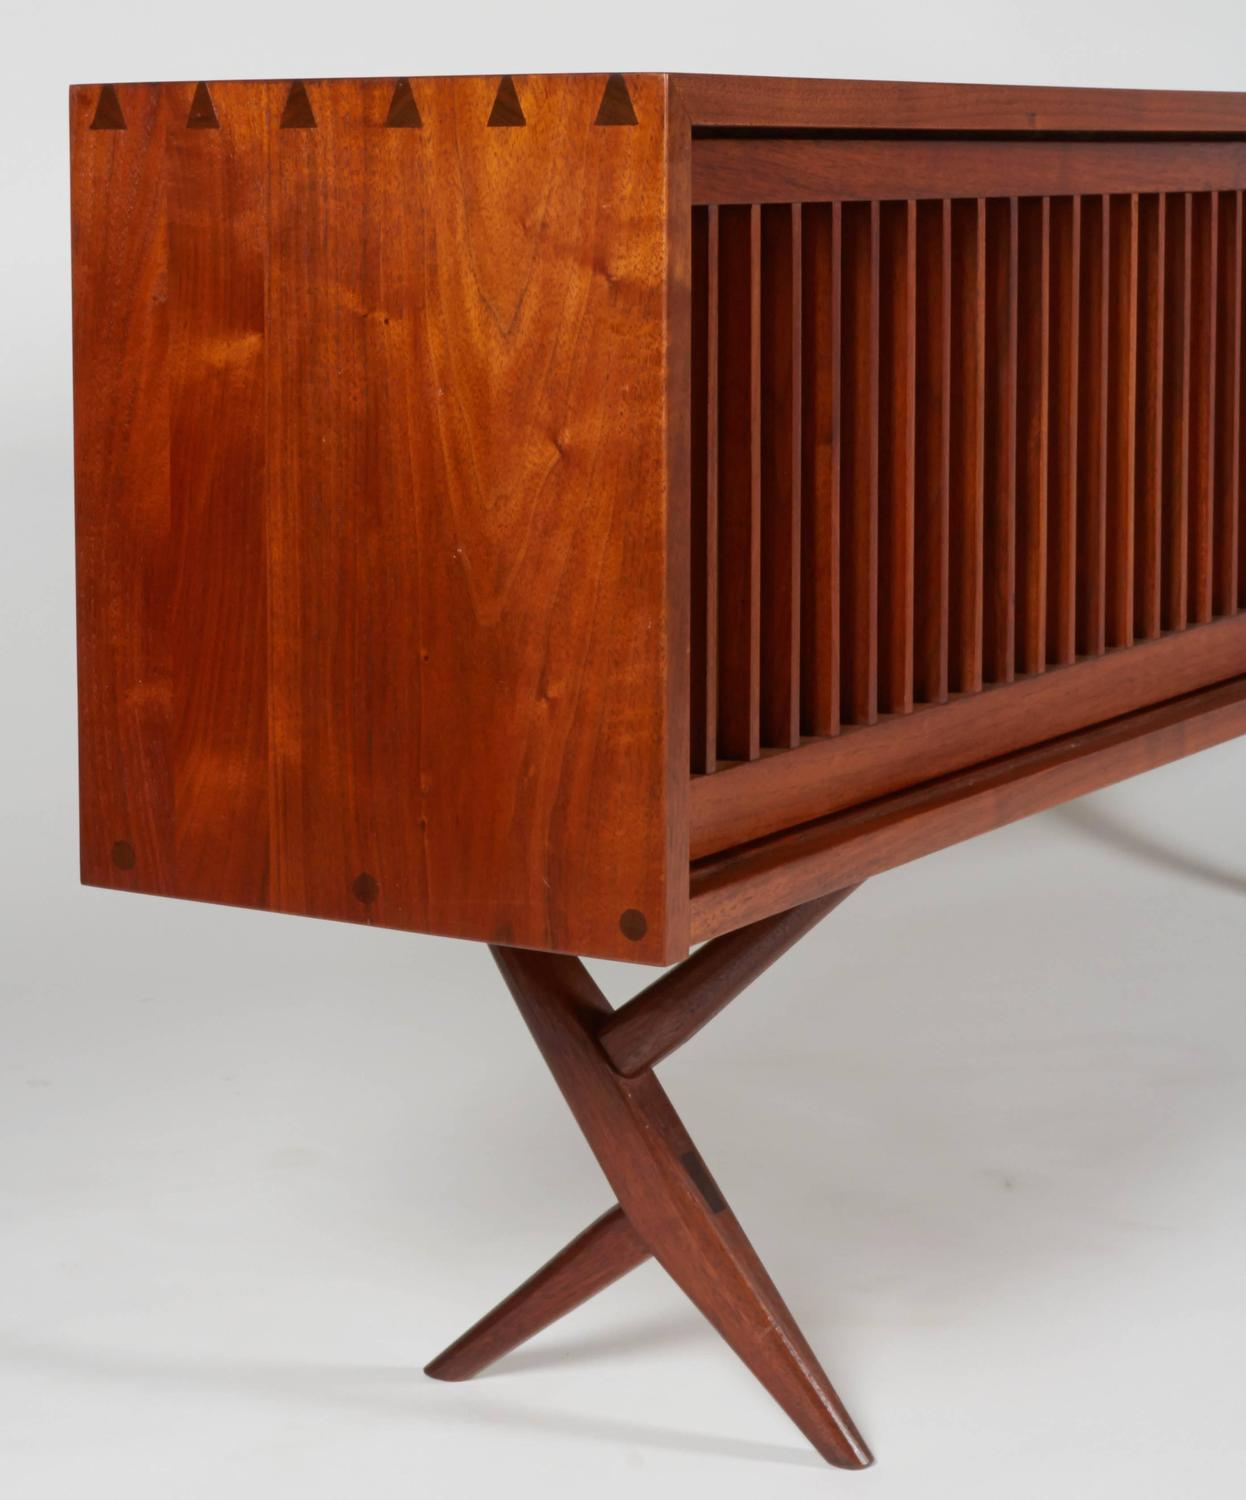 Rare and Exceptional George Nakashima Cabinet For Sale at